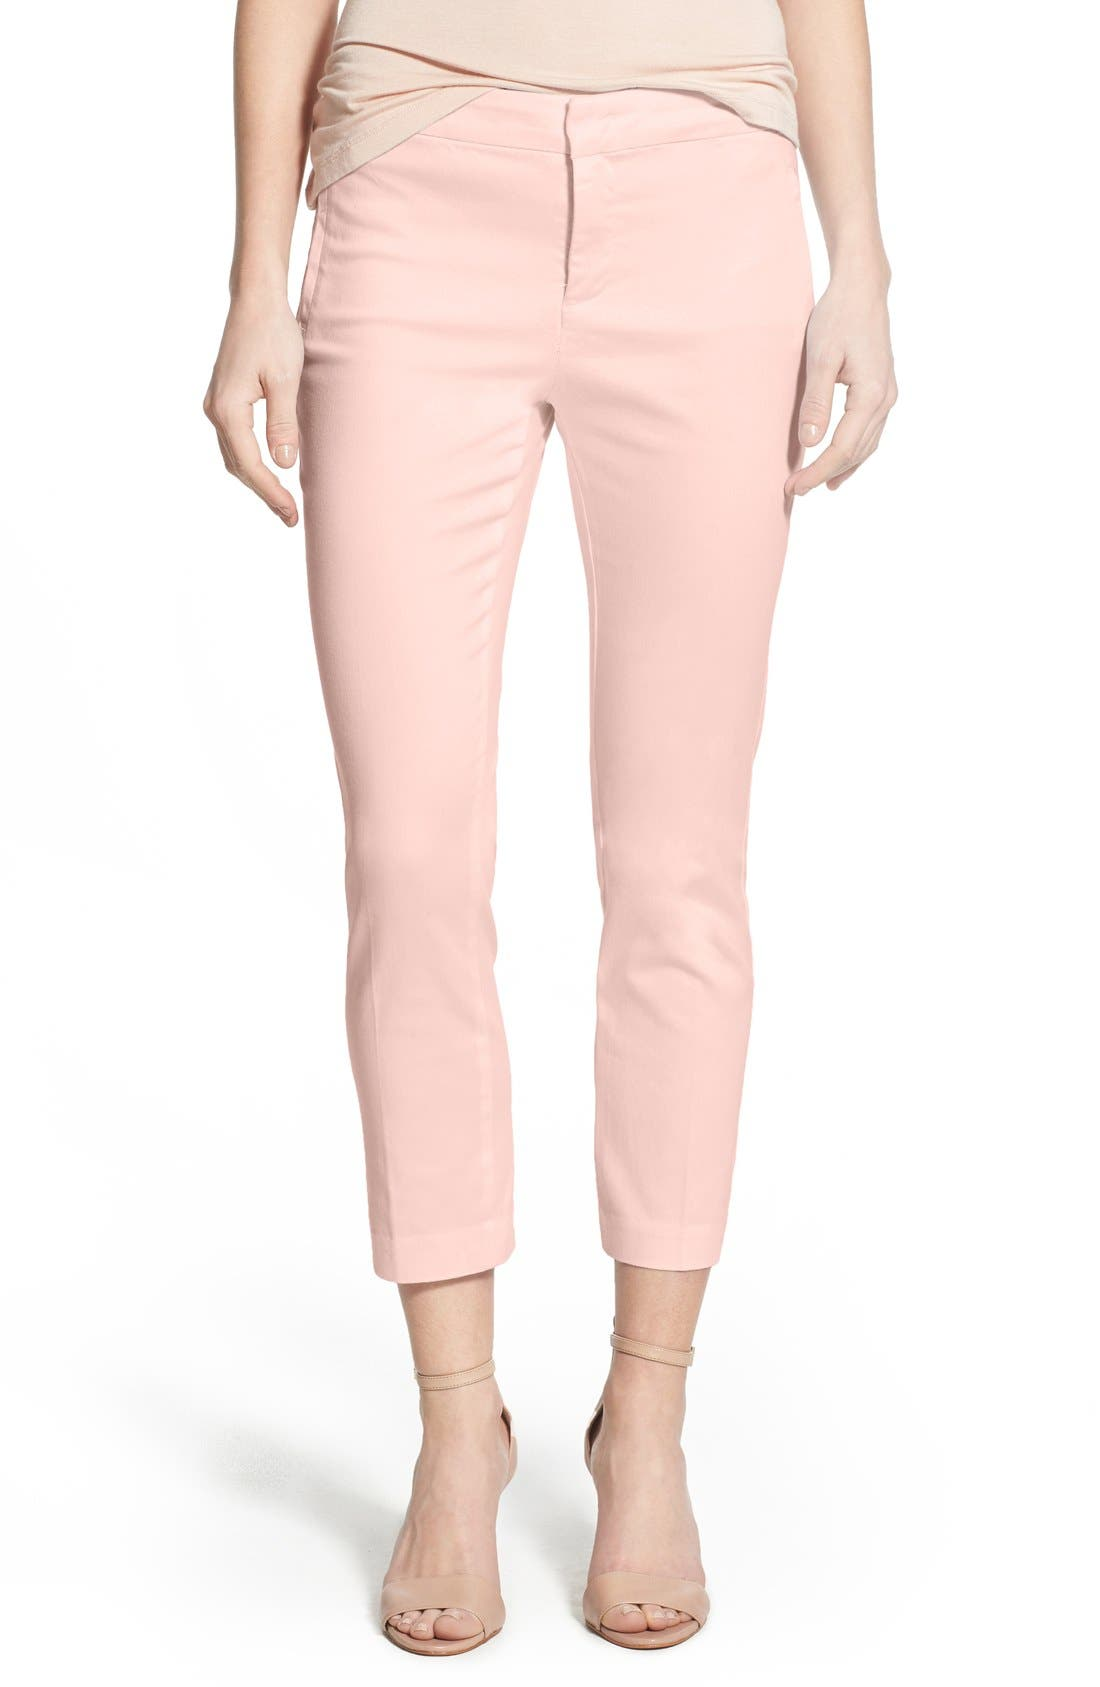 Alternate Image 1 Selected - NYDJ 'Corynna' Print Stretch Sateen Slim Ankle Pants (Regular & Petite)